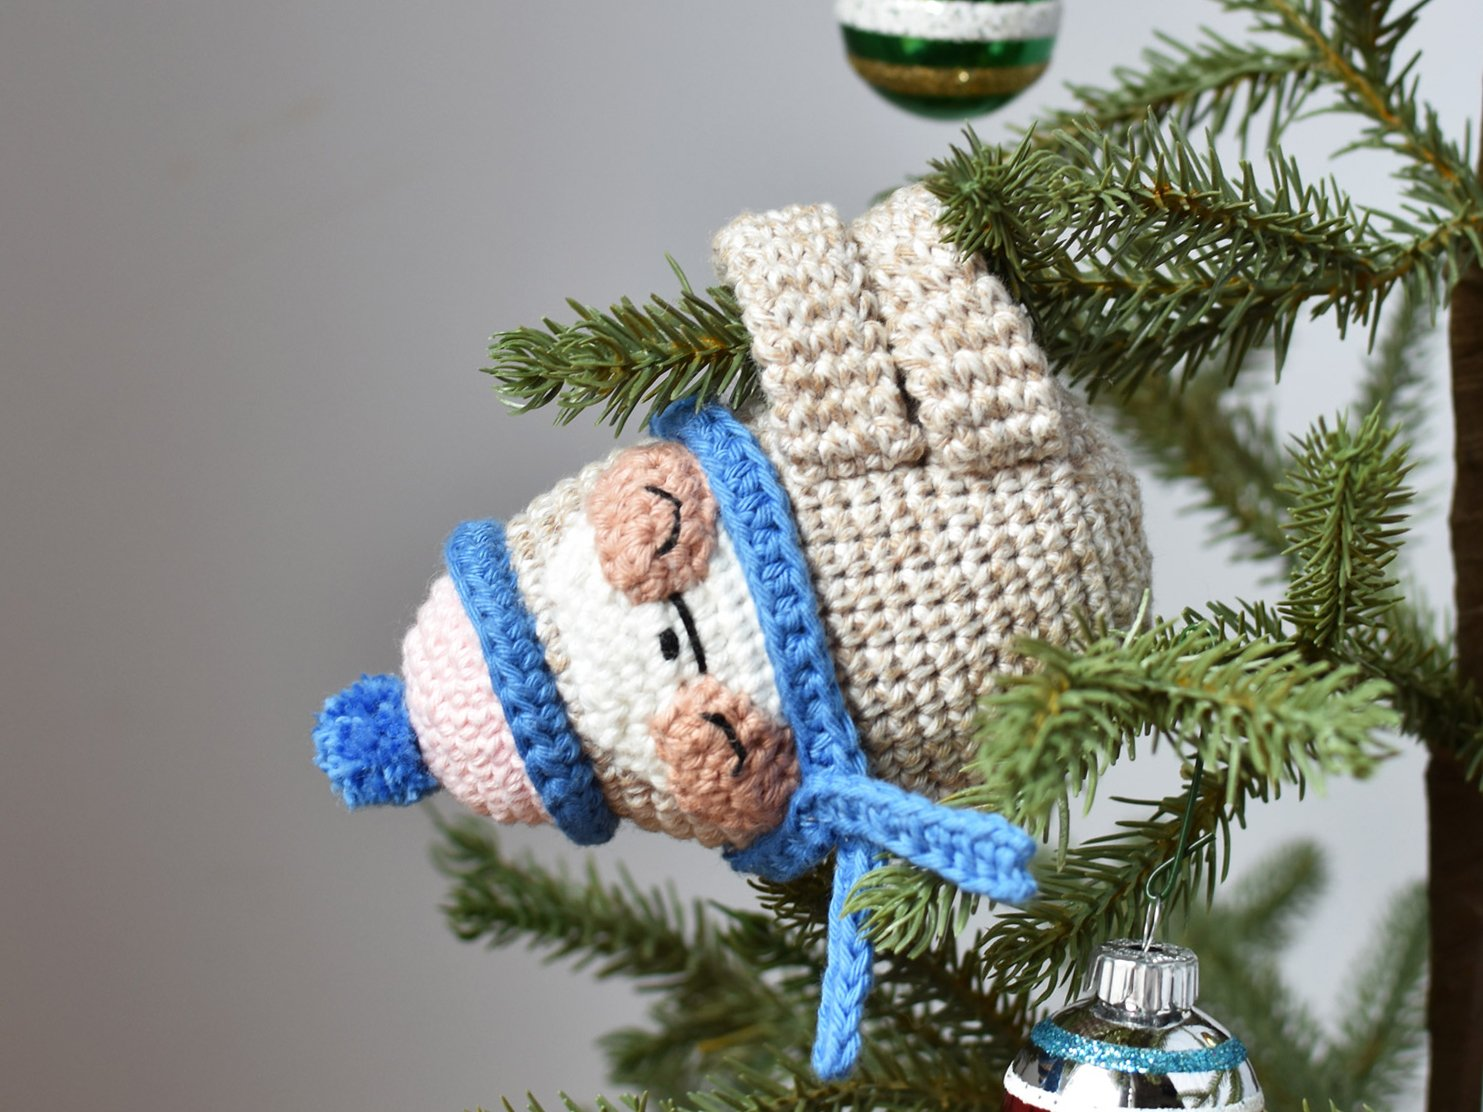 Sloth crochet Christmas ornament hanging from limb